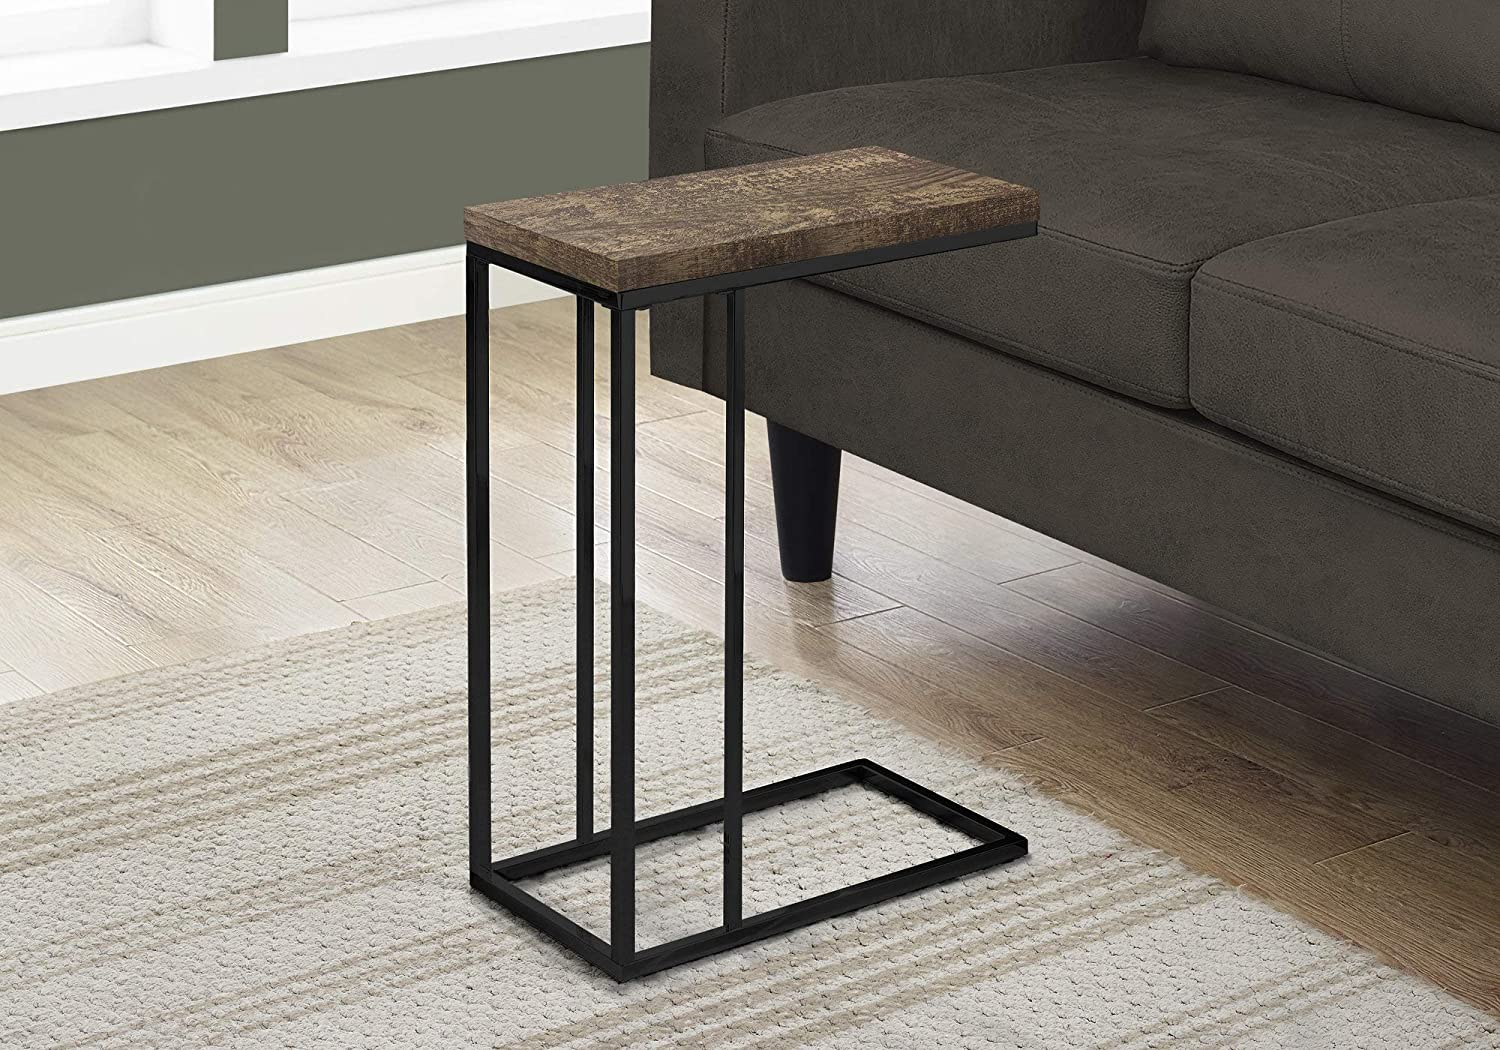 Monarch Specialties I 3403 Brown Reclaimed Wood-Look Black Metal Accent, End, Snack Table